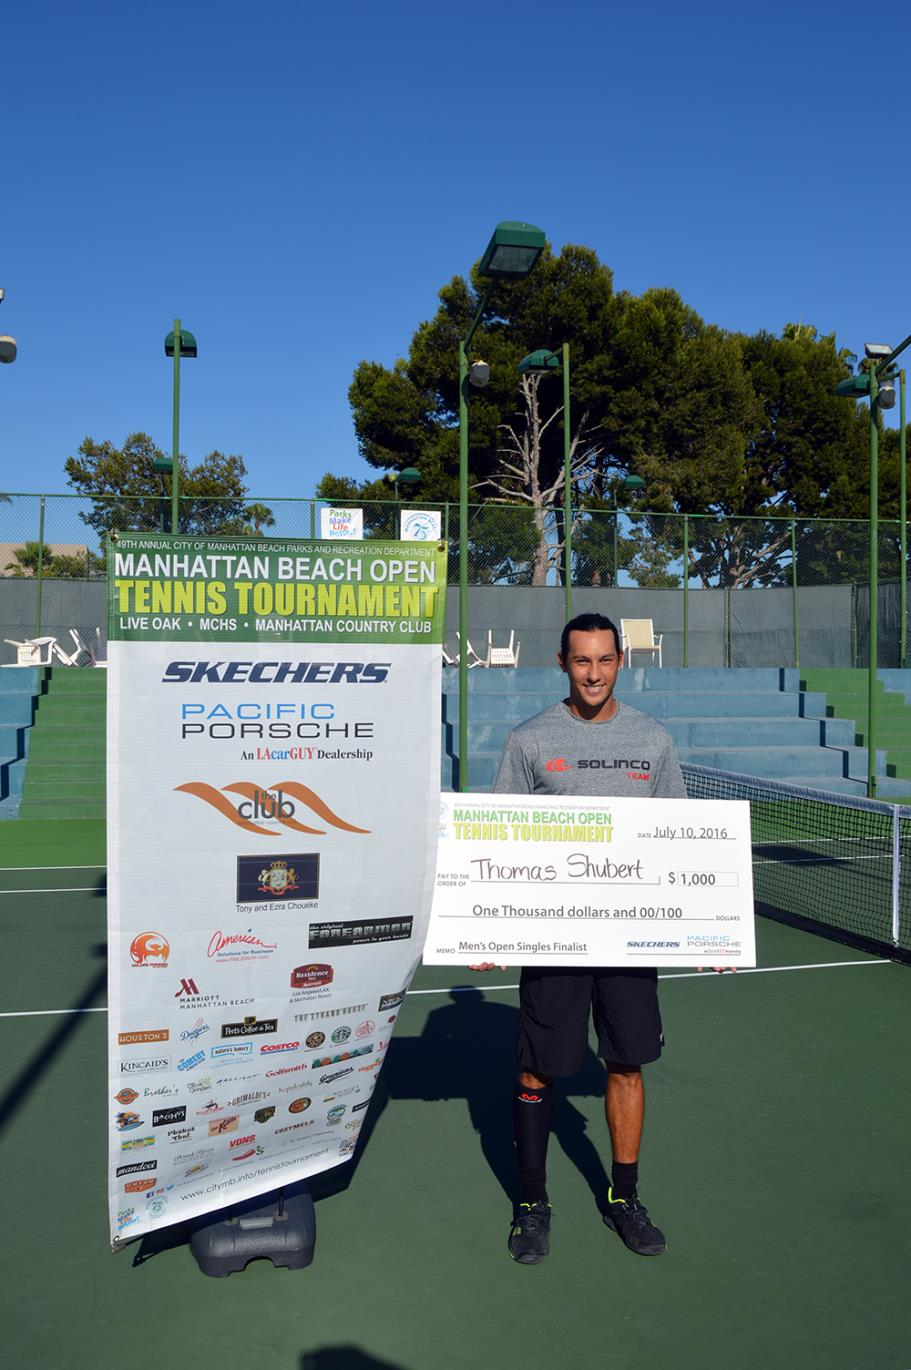 Thomas Shubert Men's Open Singles Finalist